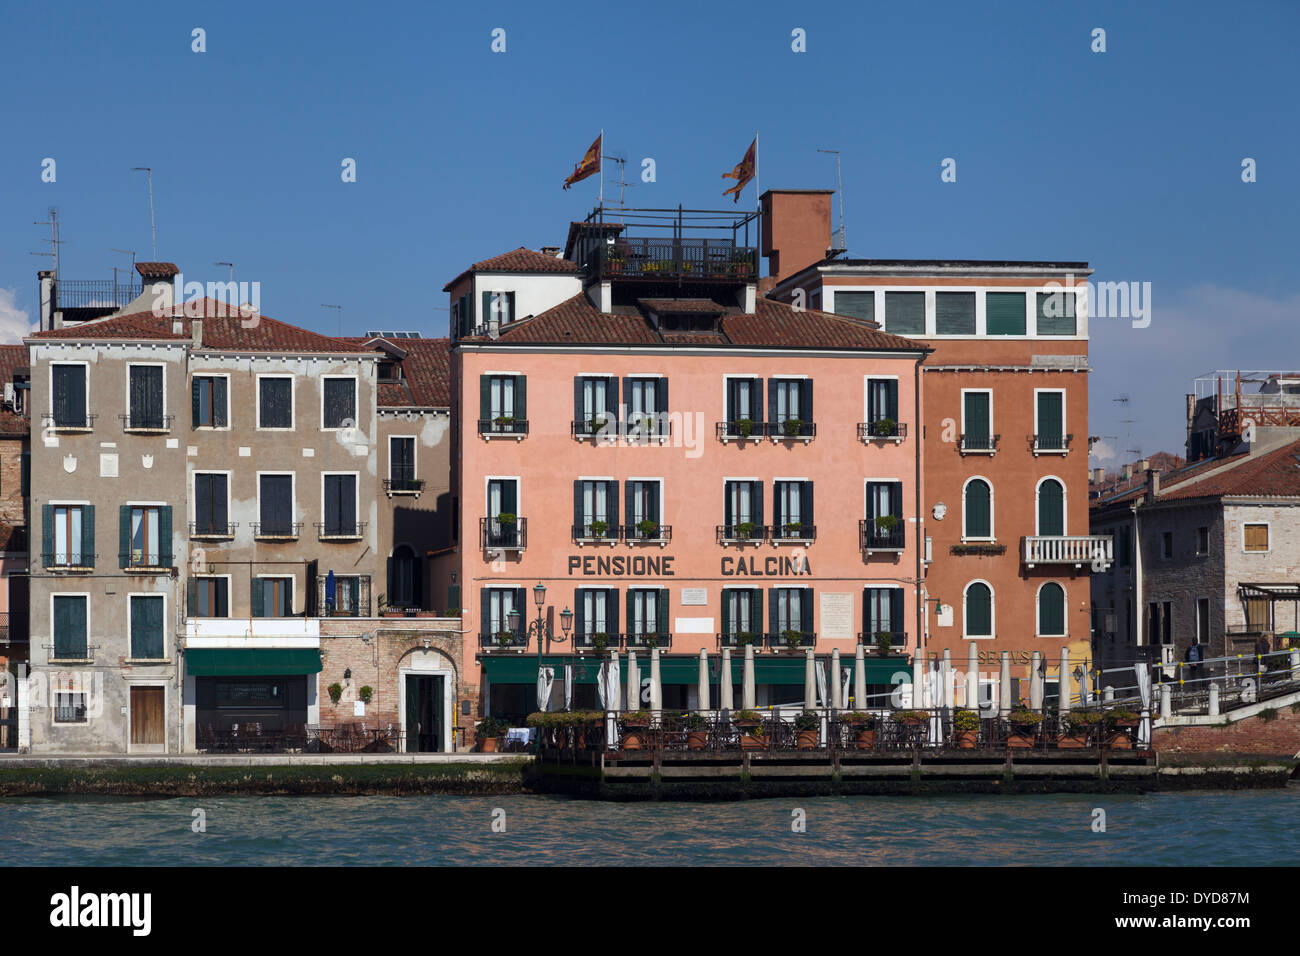 Pensione La Calcina (centre), a literary hotel where John Ruskin and many other writers resided, Giudecca Canal, Venice, Italy - Stock Image